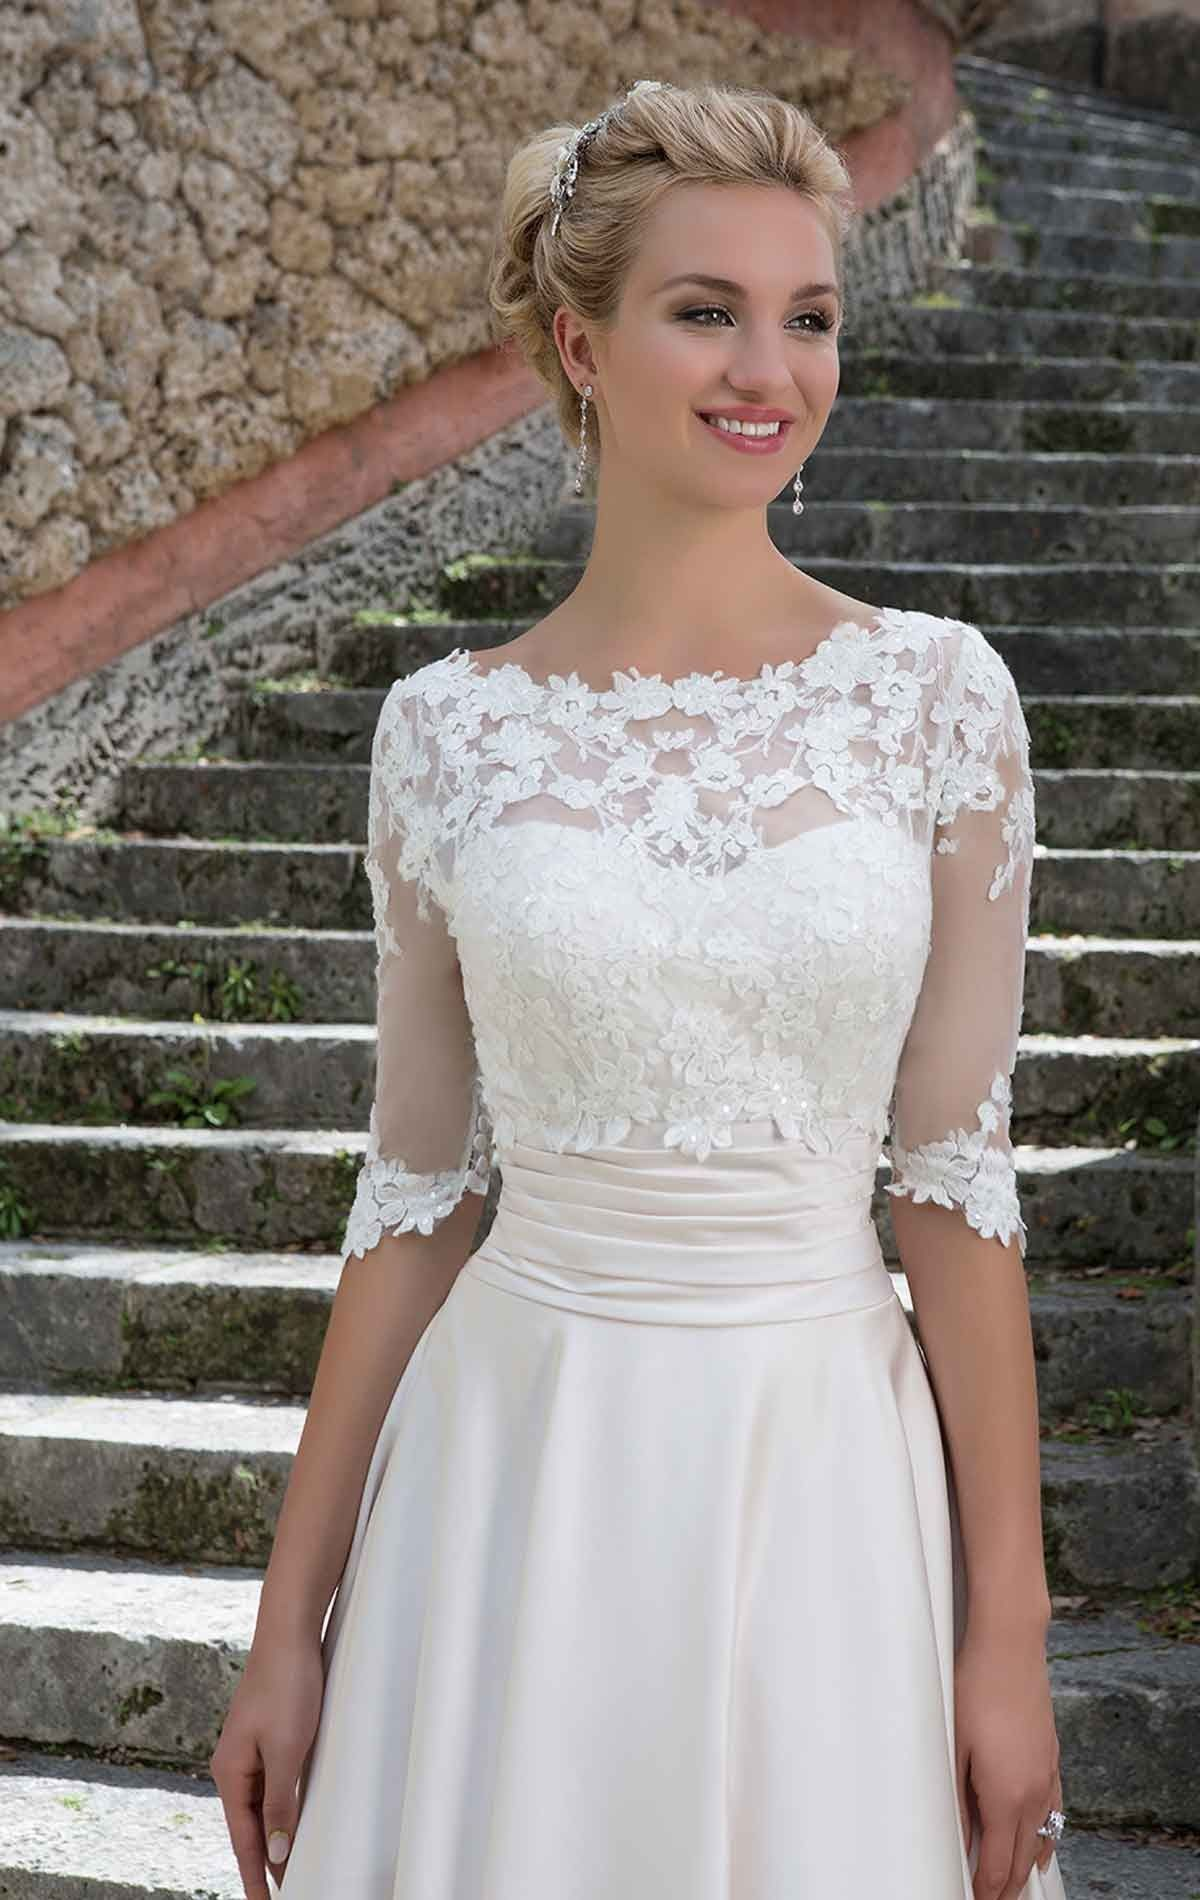 3877 beatrice sincerity 3877 satin ball gown wedding dress 3877 beatrice sincerity 3877 satin ball gown wedding dress with lace jacket at blessings ombrellifo Images